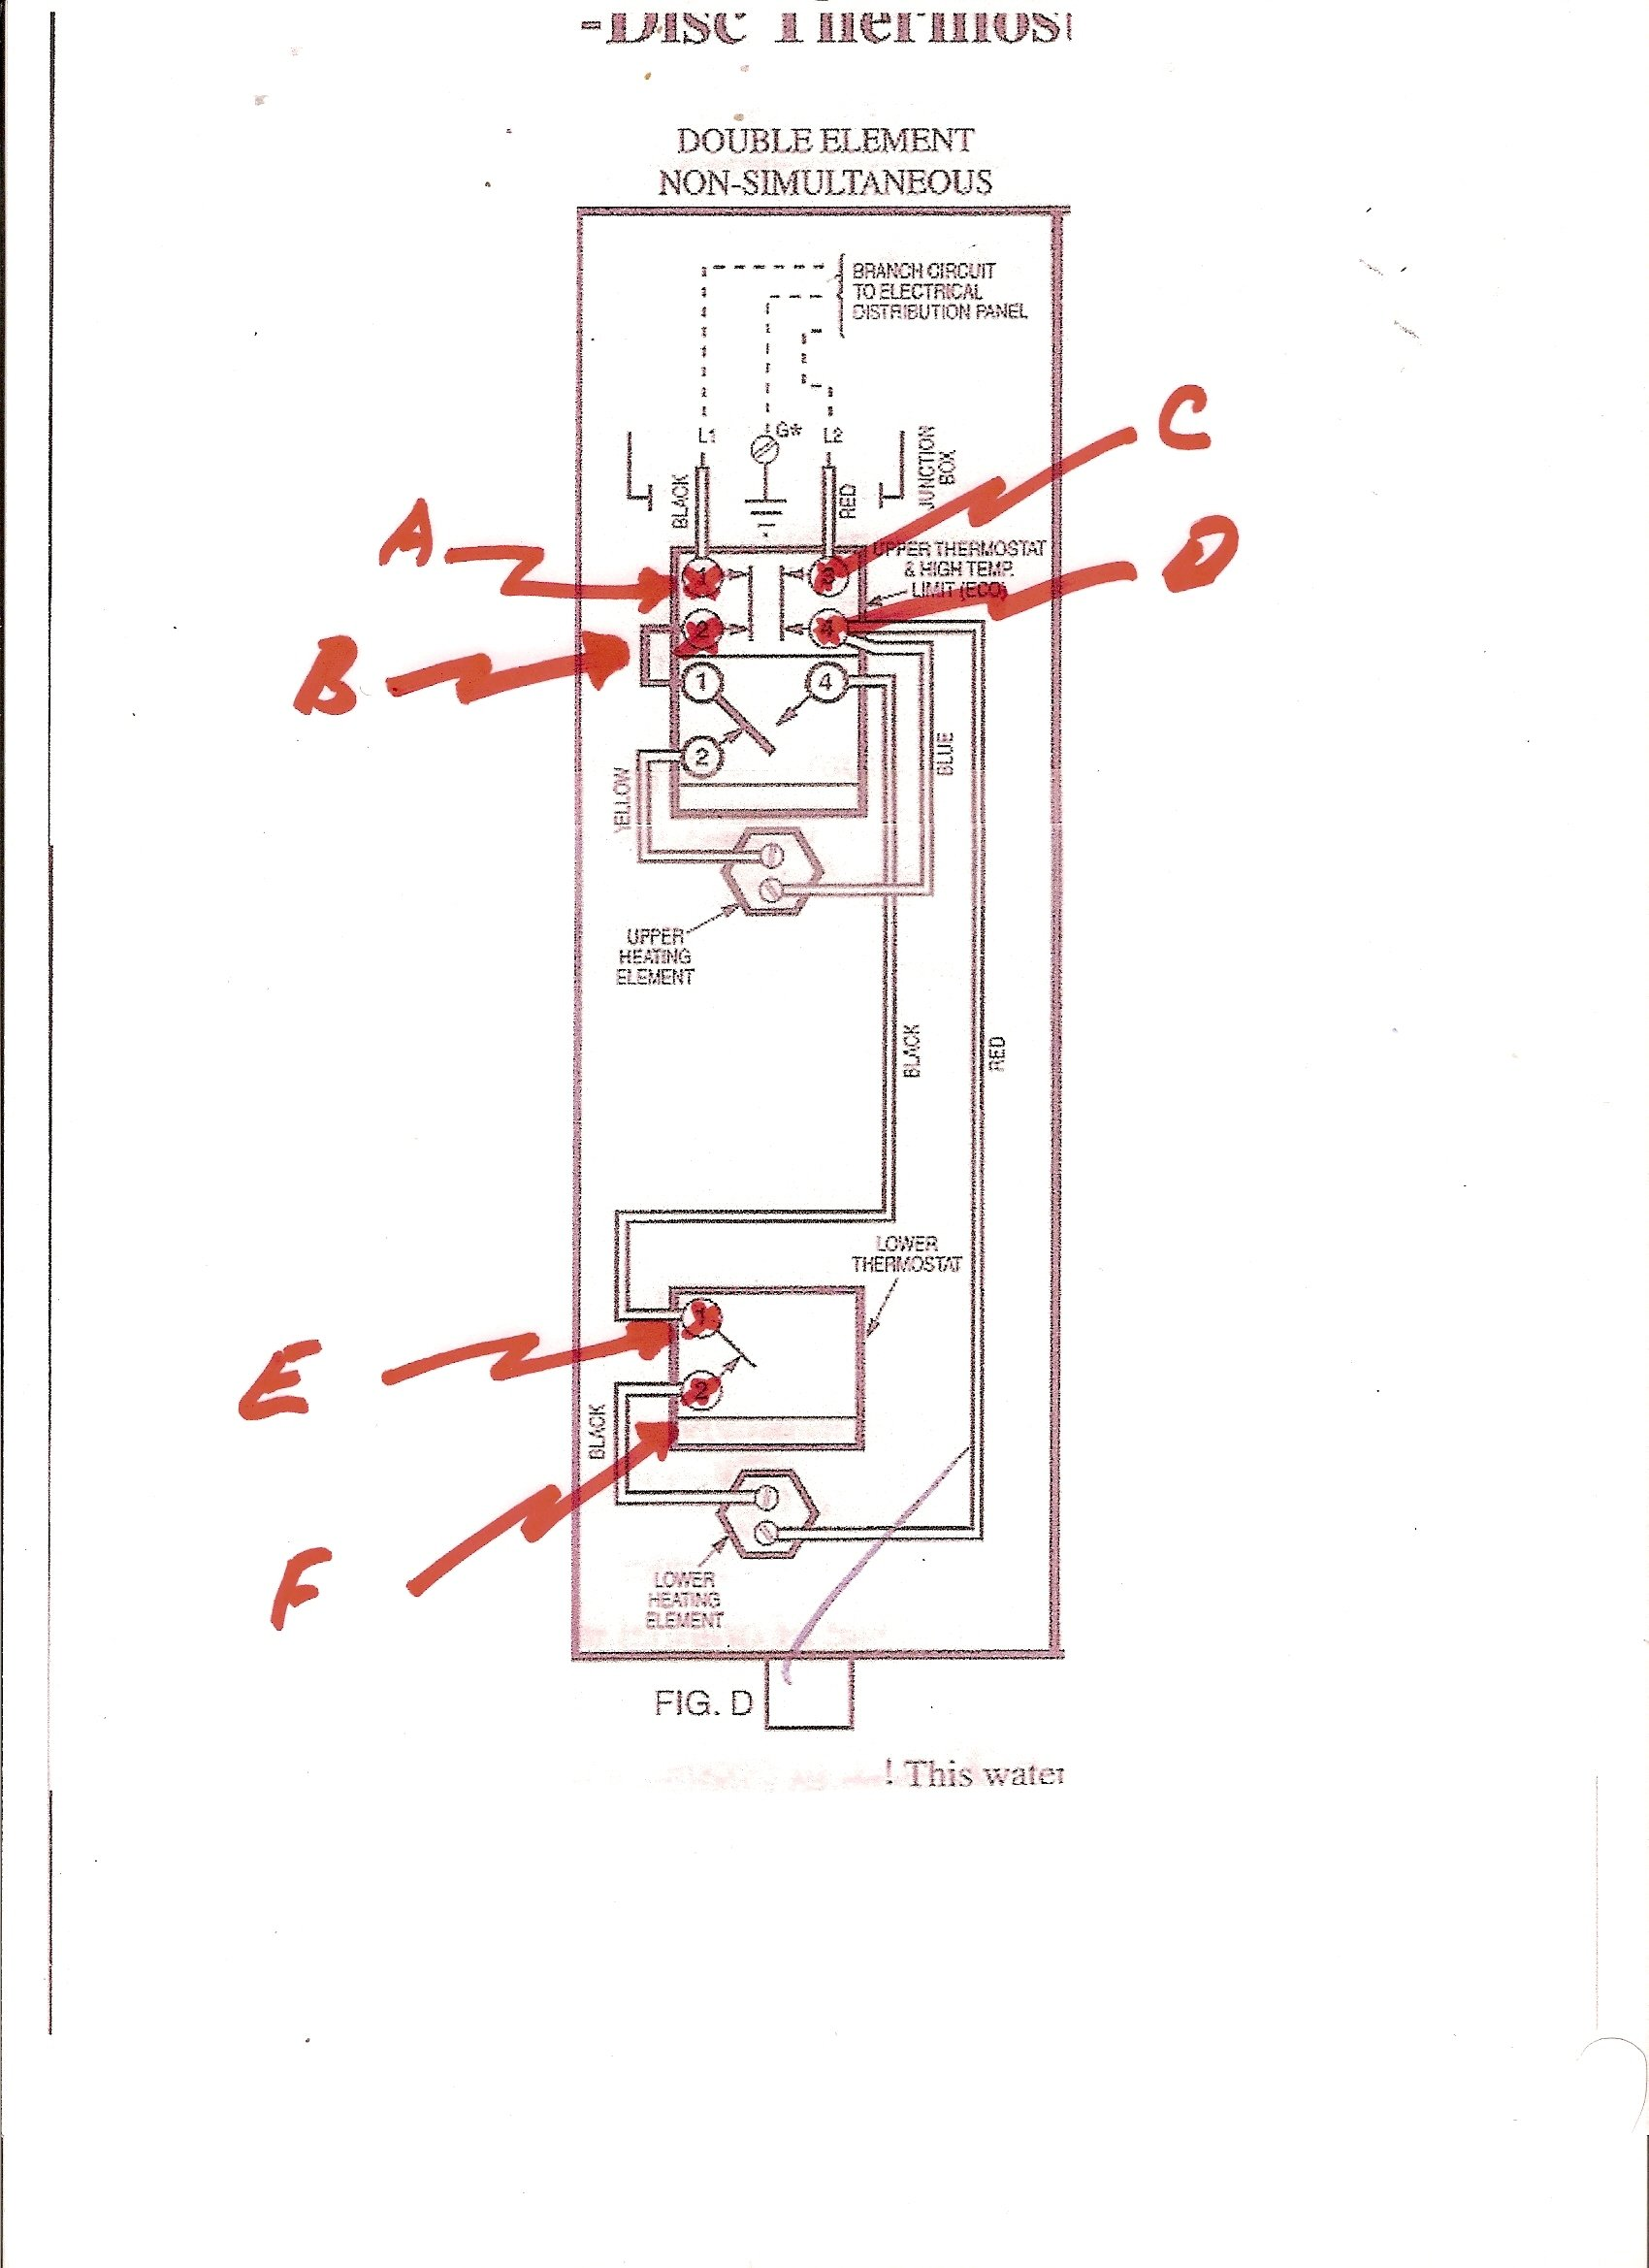 2010 11 18_183514_wh_wiring_0020001 i have a rheem 50 gallon, double element water heater which is one rheem water heater wiring diagram at reclaimingppi.co